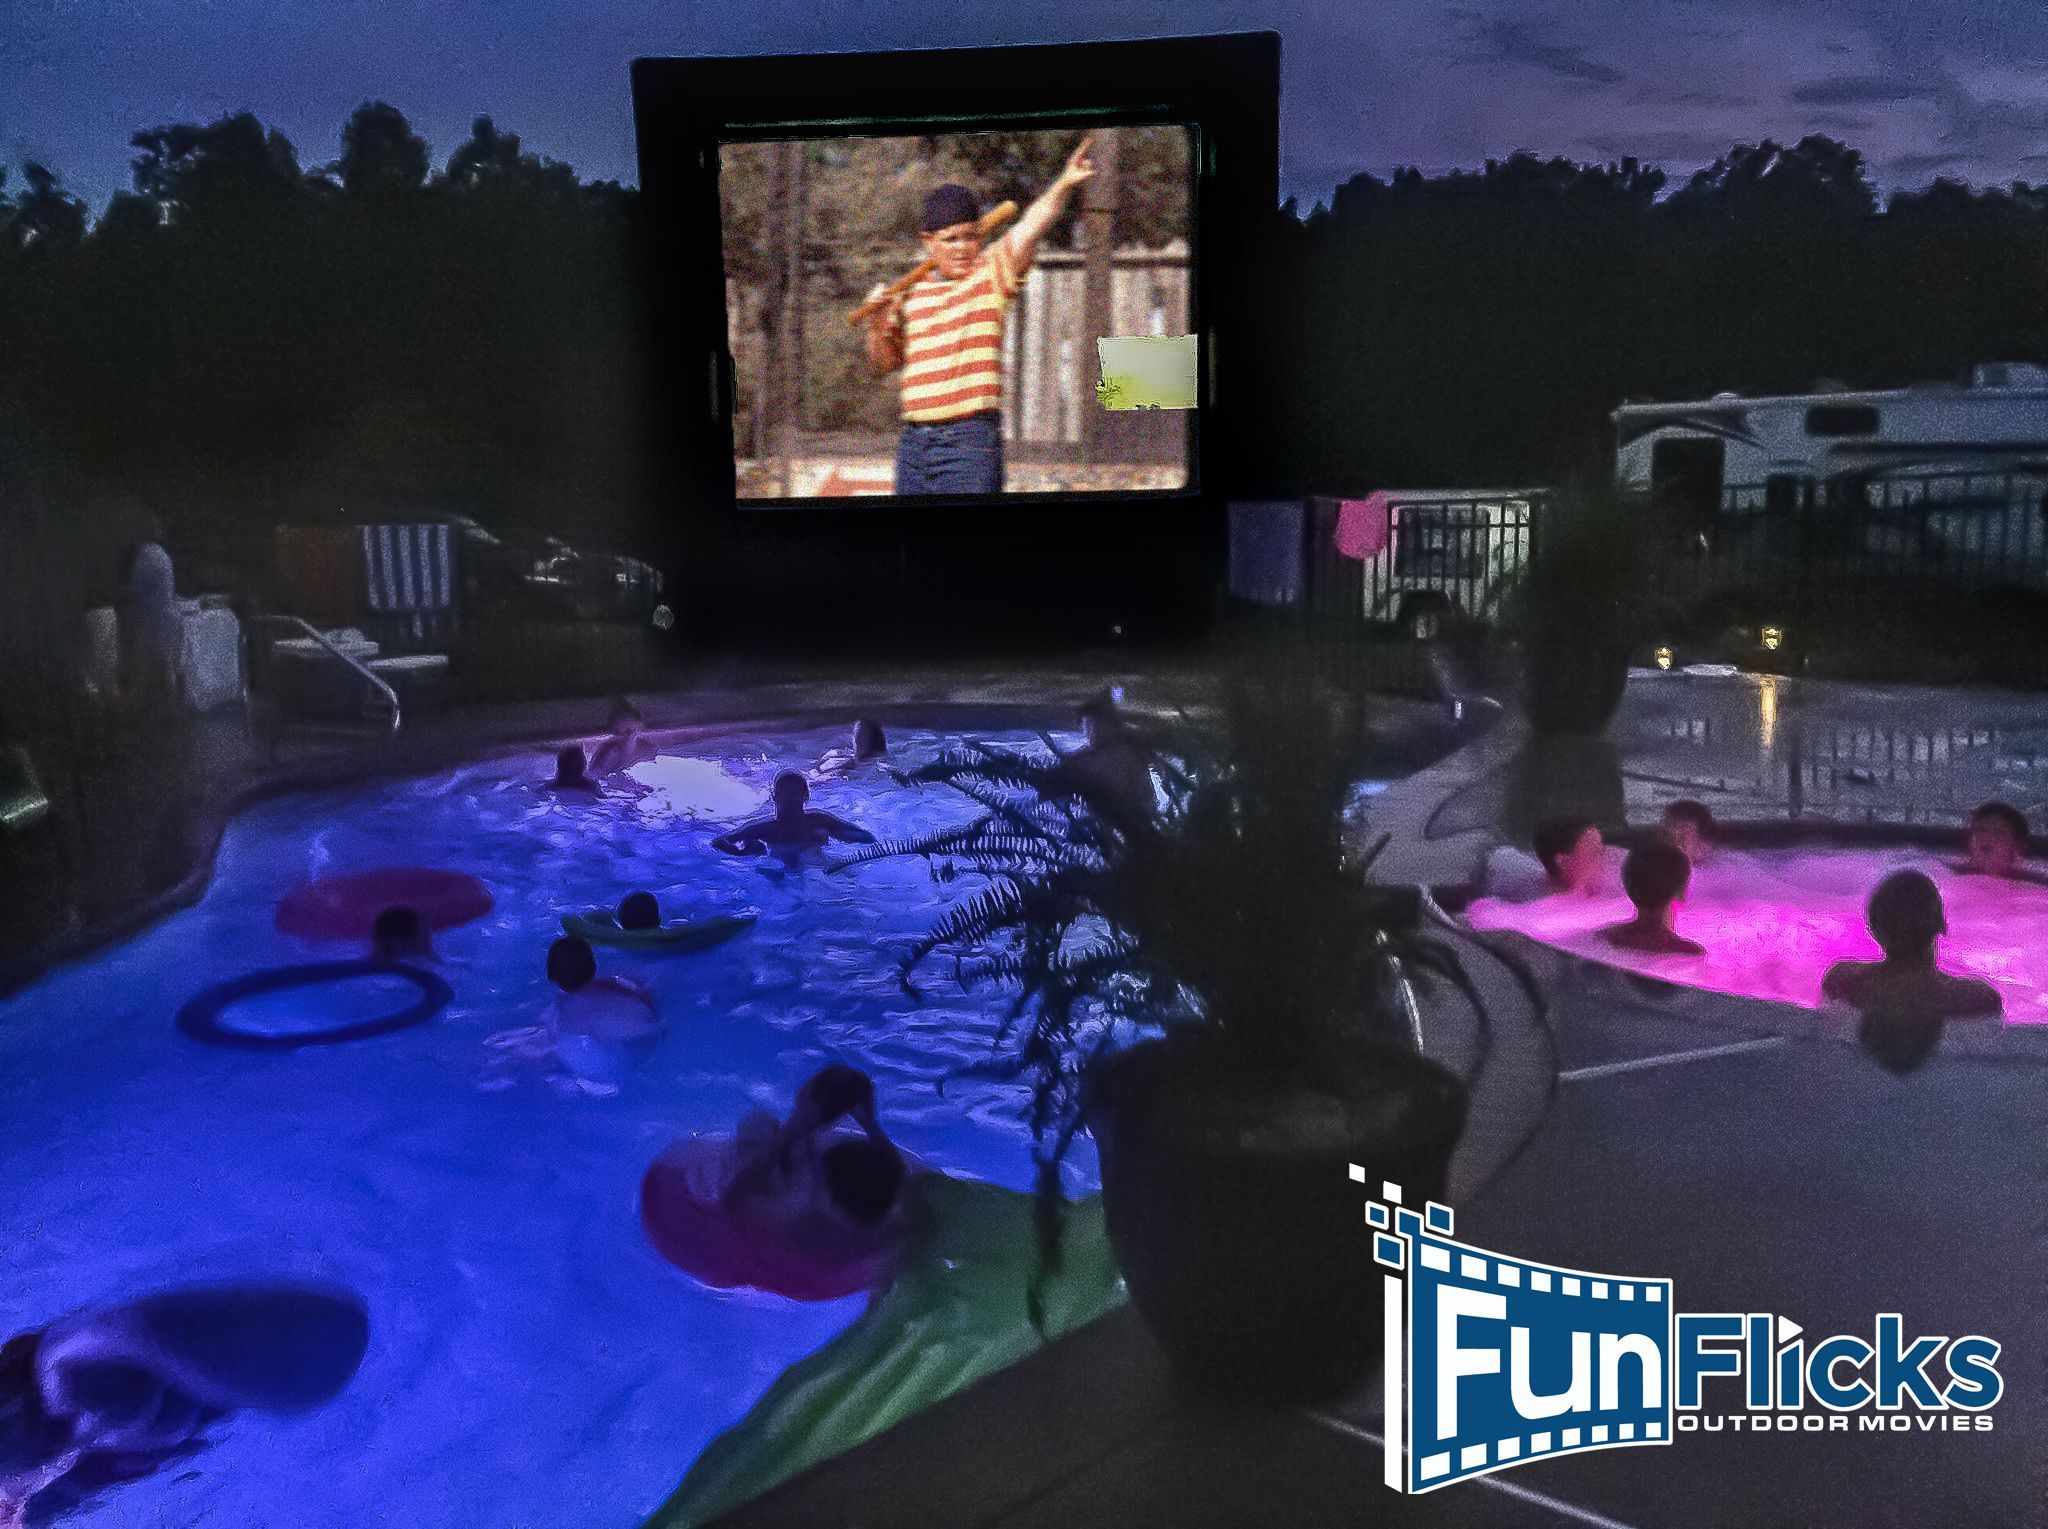 Night pool party ideas include a screen placed on your pool deck for an outdoor movie